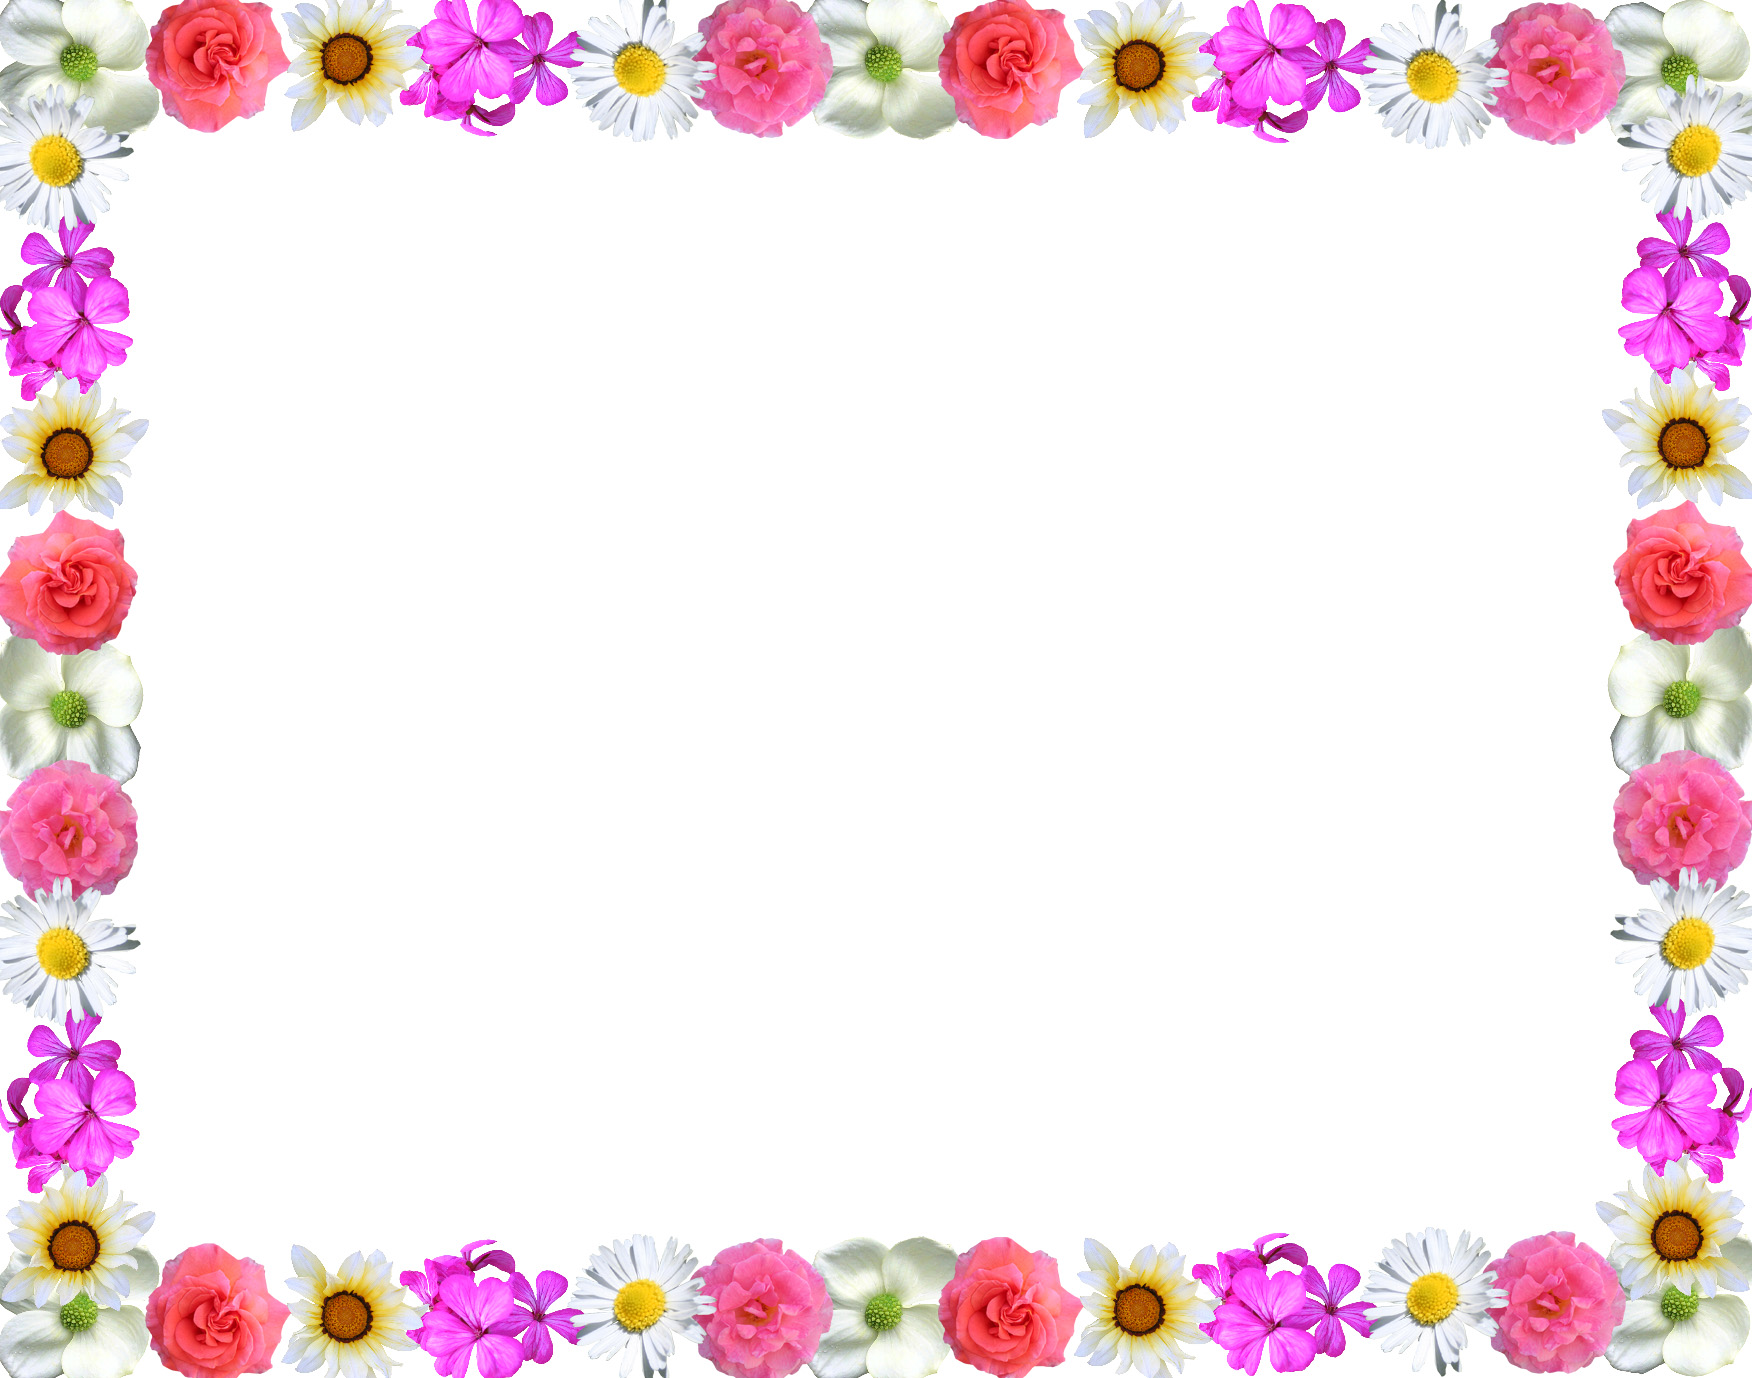 Free Page Border Templates - Cliparts.co